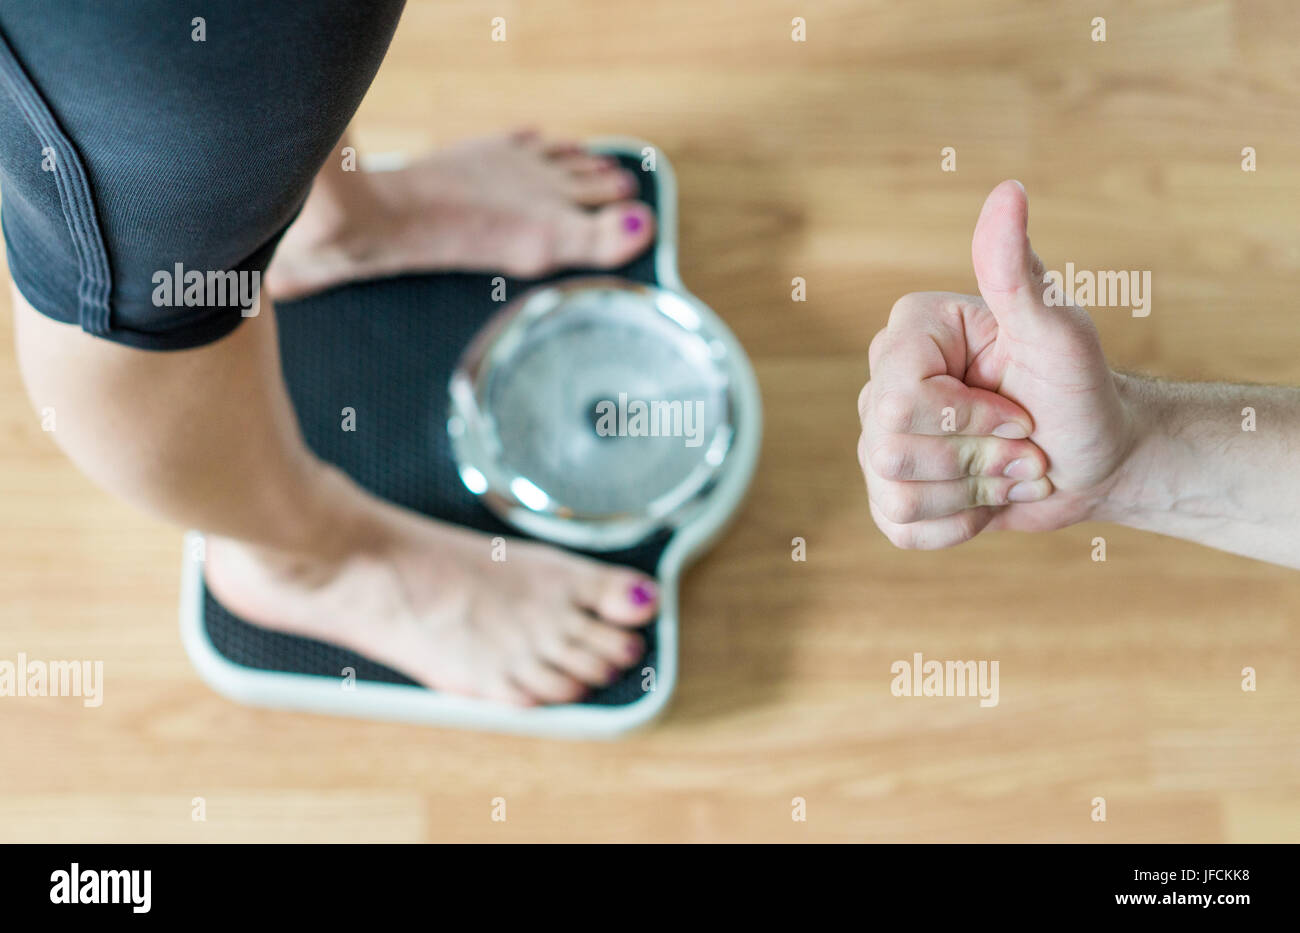 Personal trainer or coach giving thumbs up to a person standing on scale. Success and great achievement in weight - Stock Image